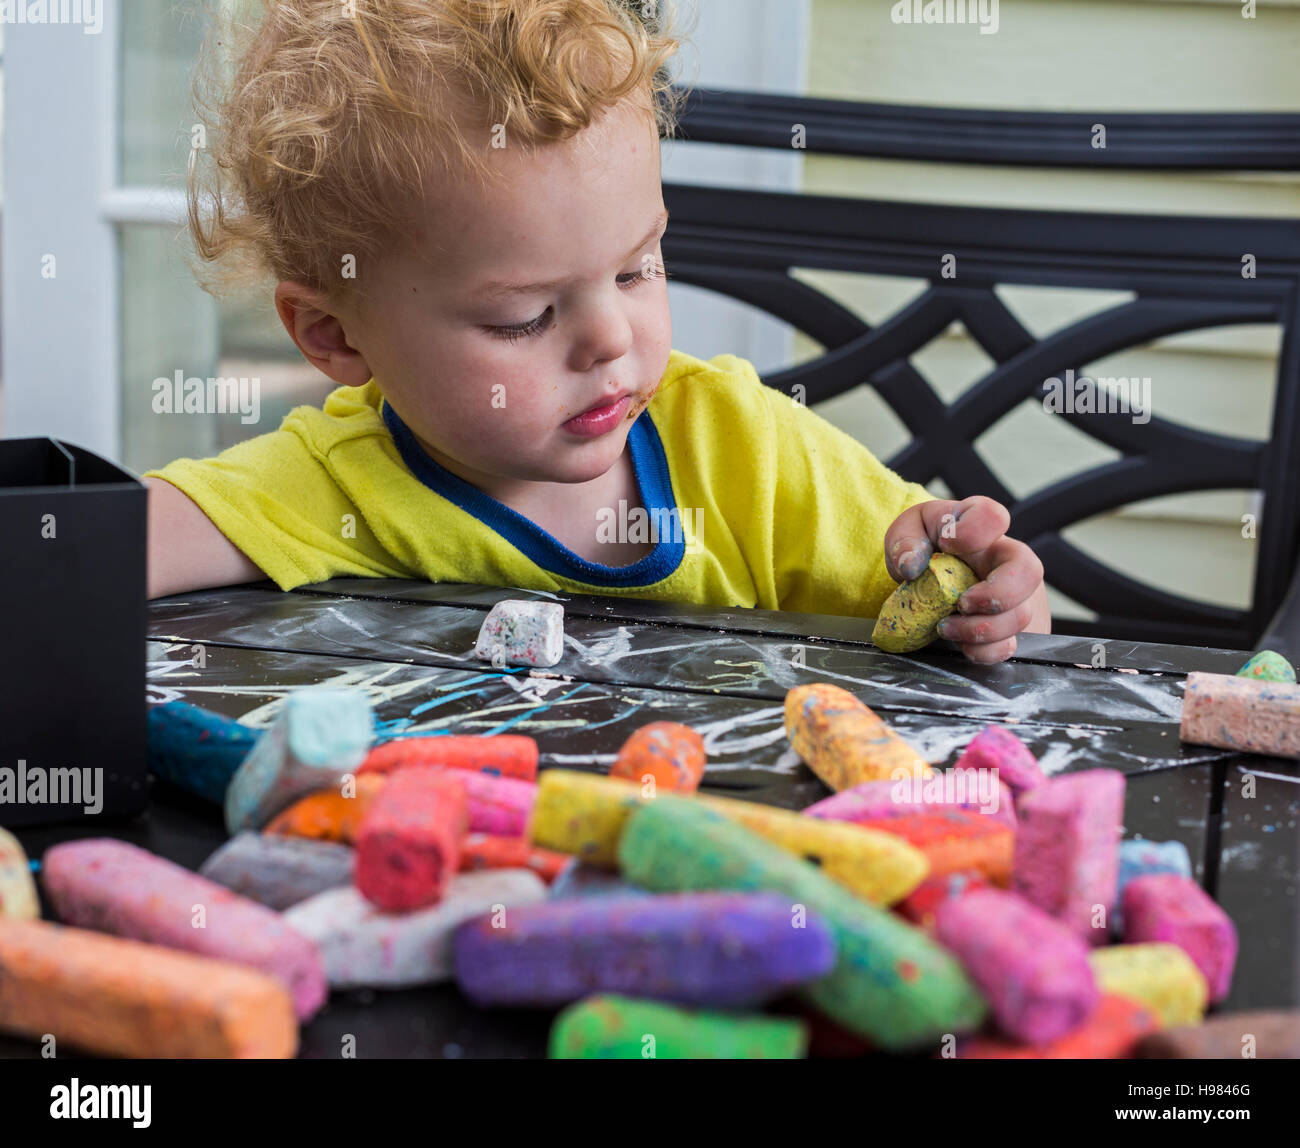 Denver, Colorado - Adam Hjermstad Jr., age 2, plays with chalk. - Stock Image